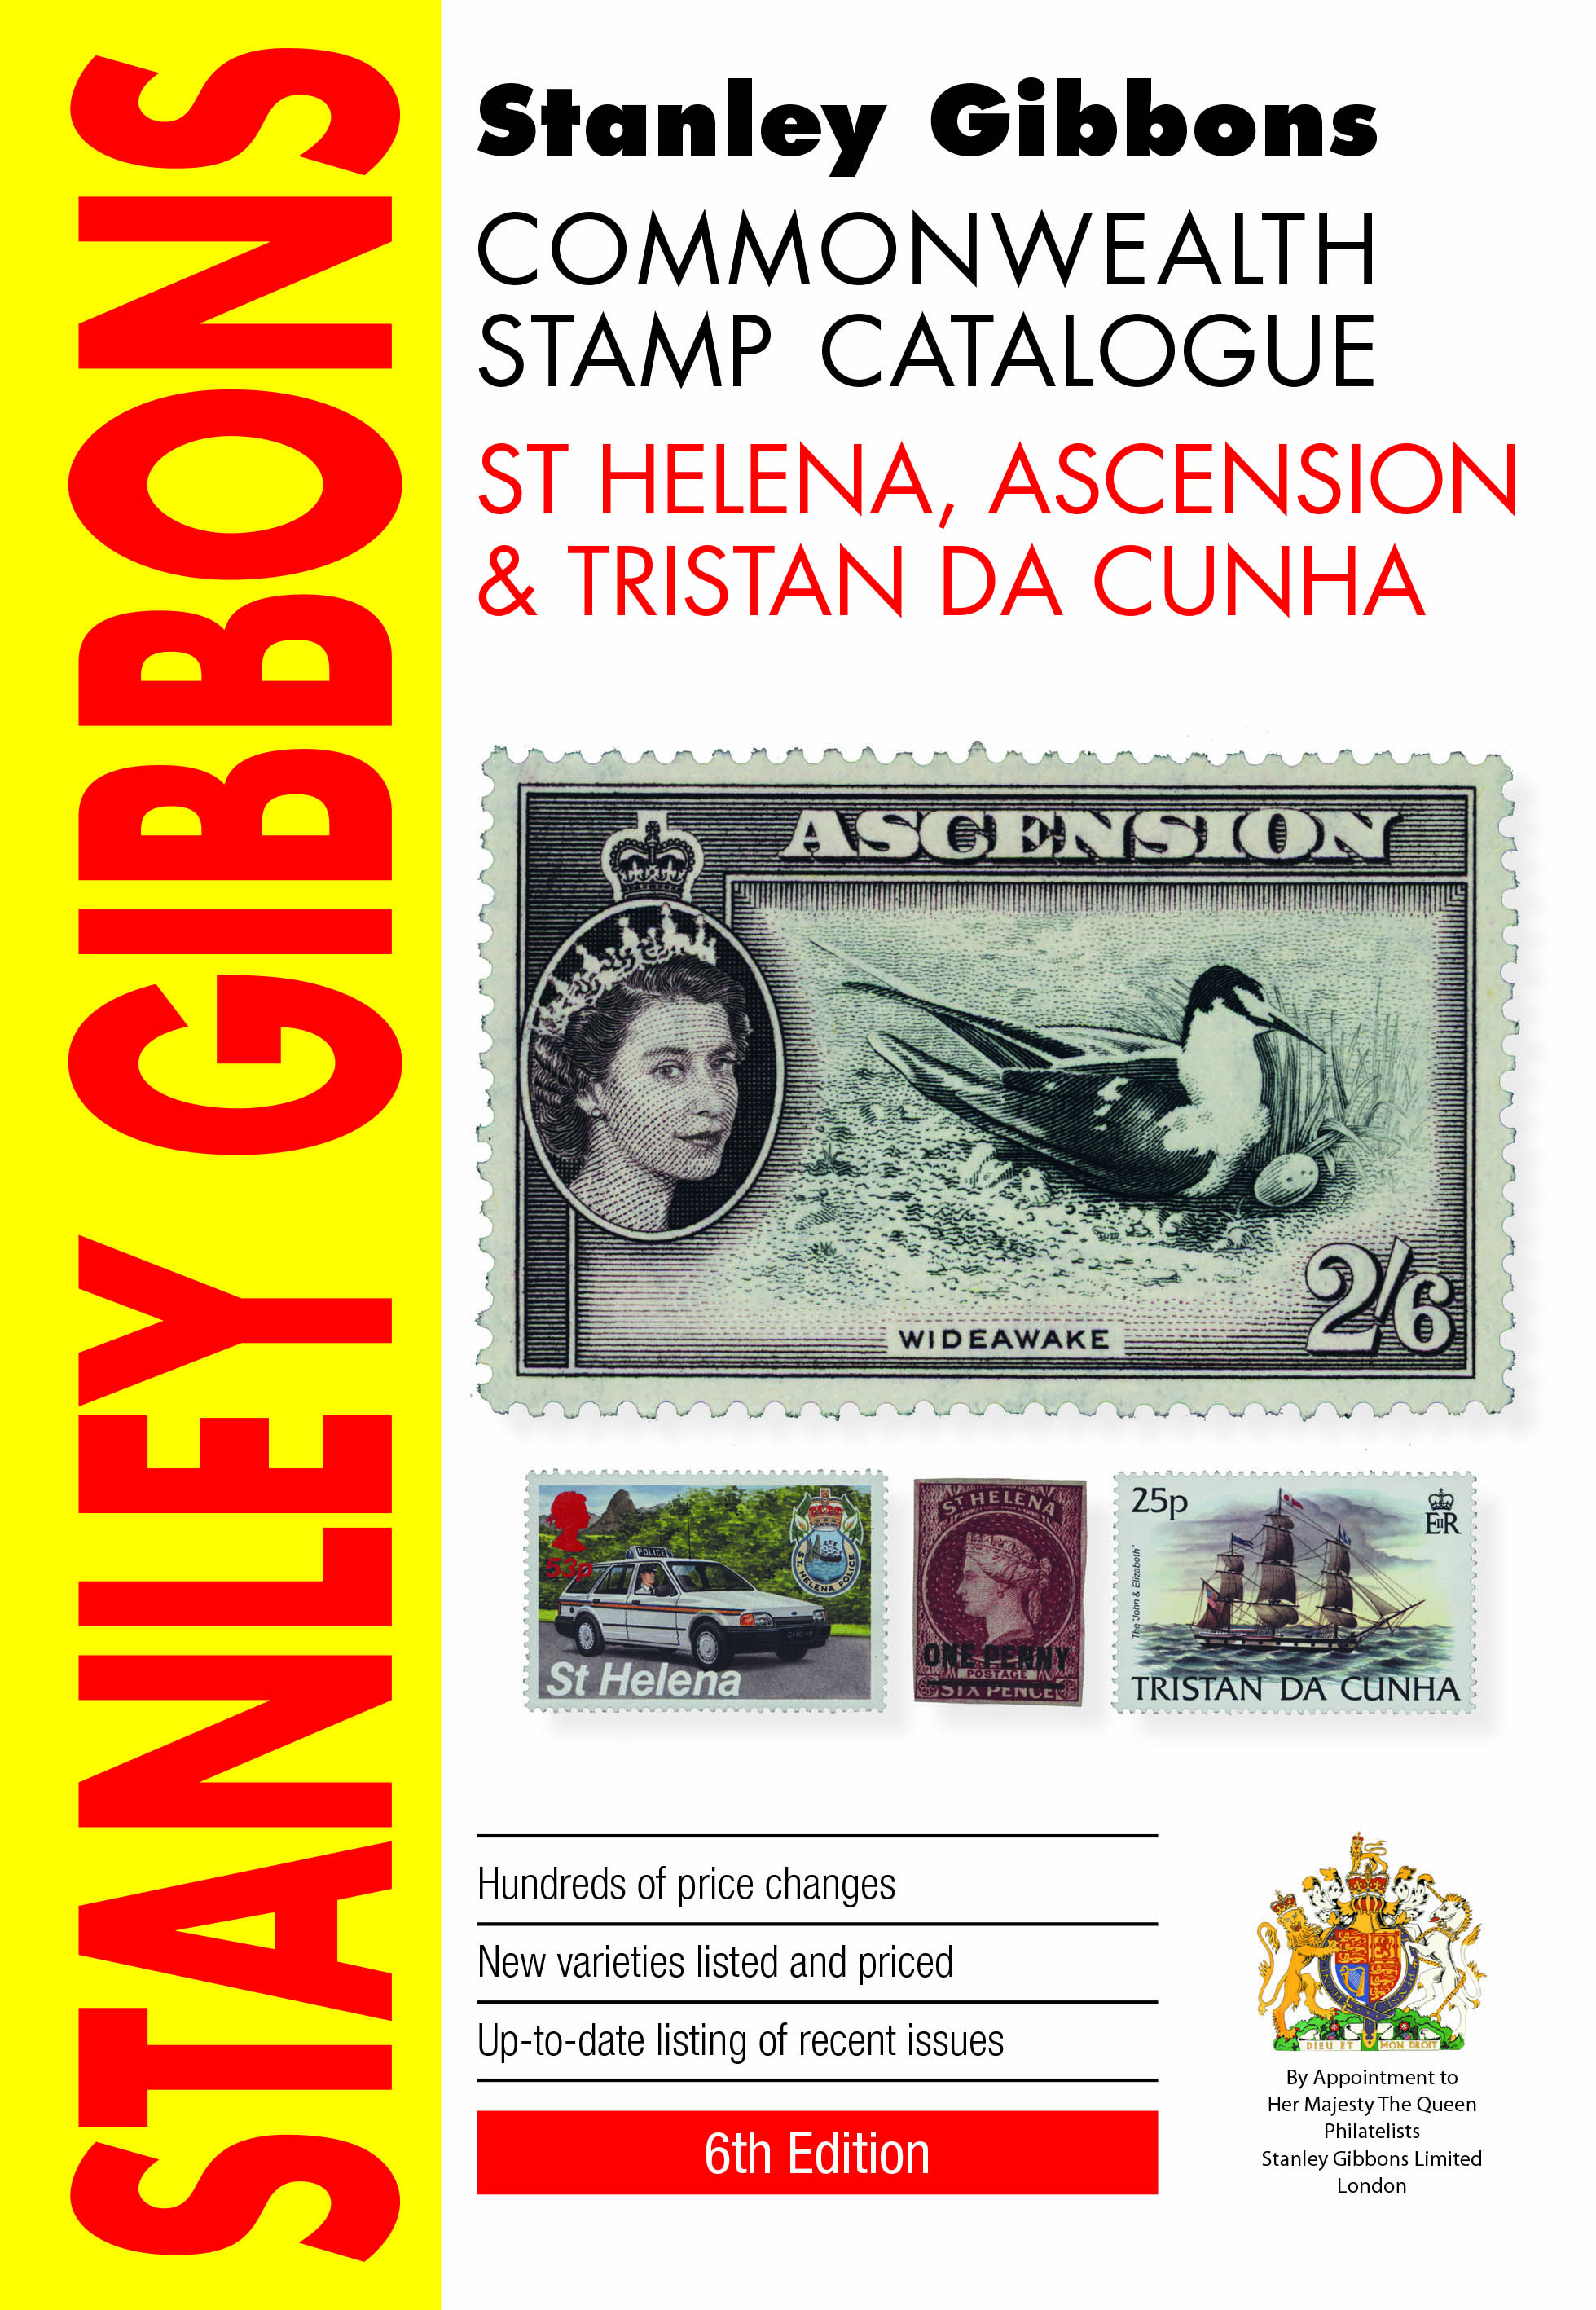 St Helena Ascension & Tristan Da Cunha Stamp Catalogue 6th